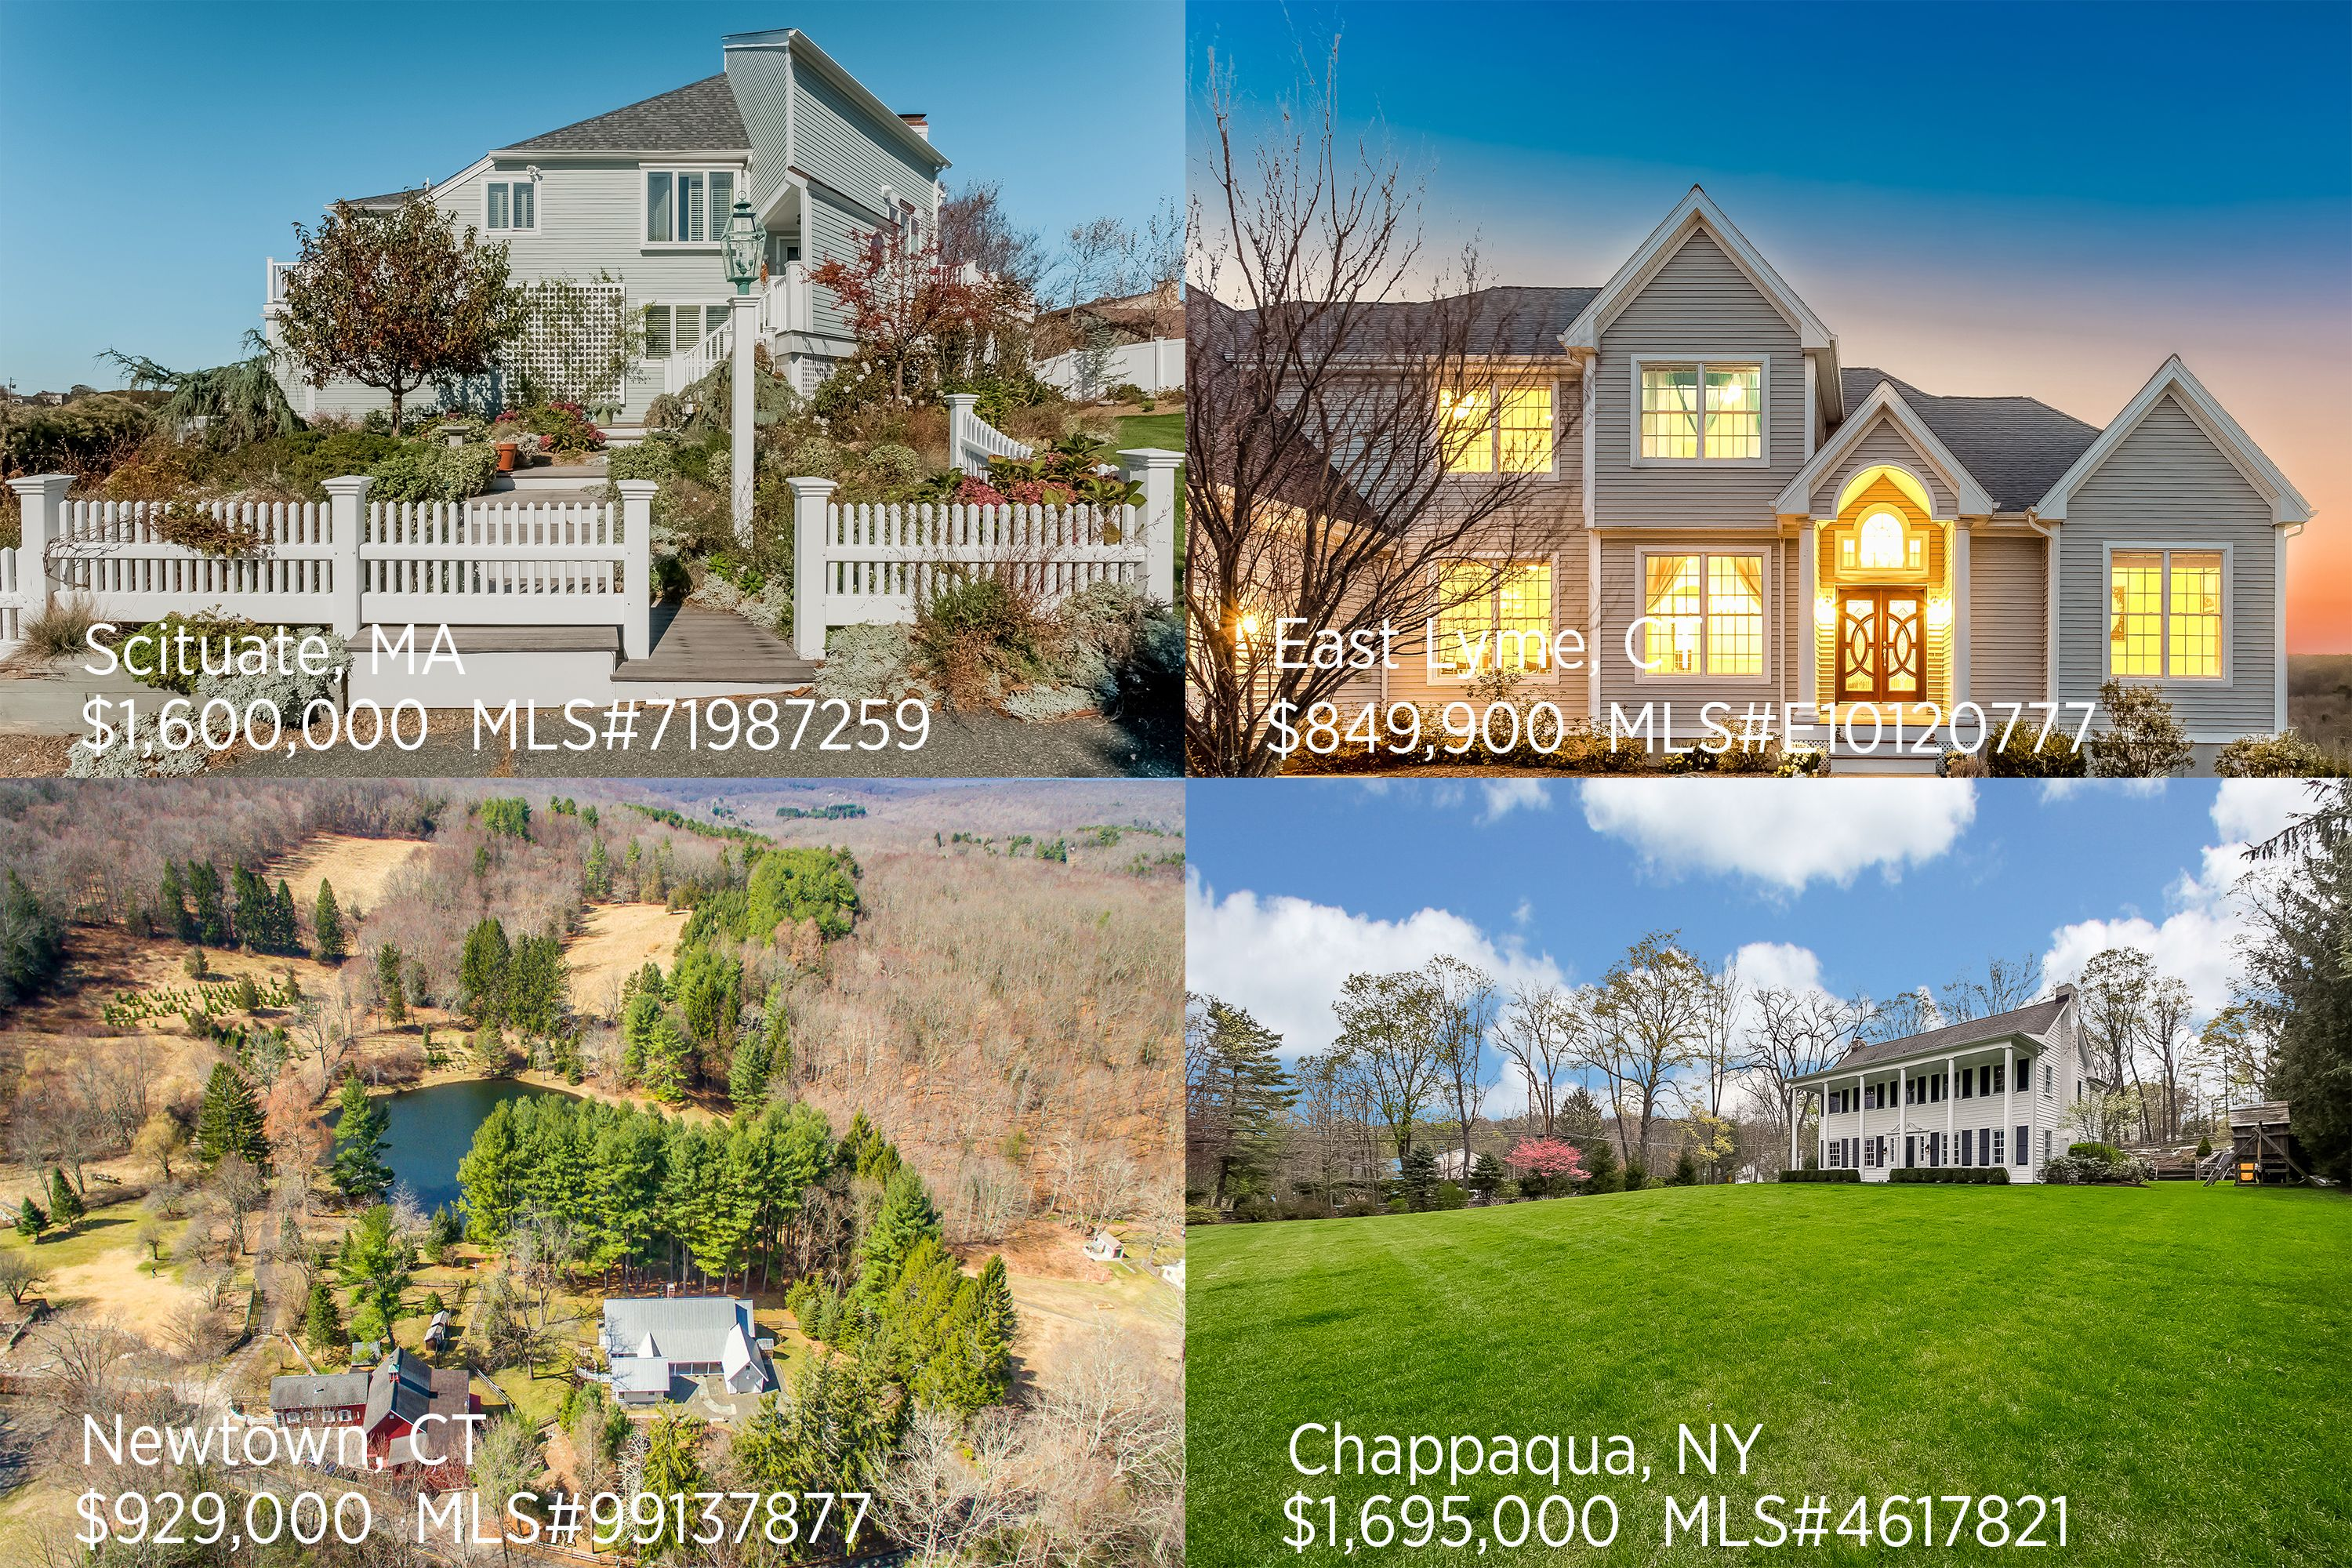 4 Cliff Estate Rd, Scituate, MAOffered by Neagle/Caffrey